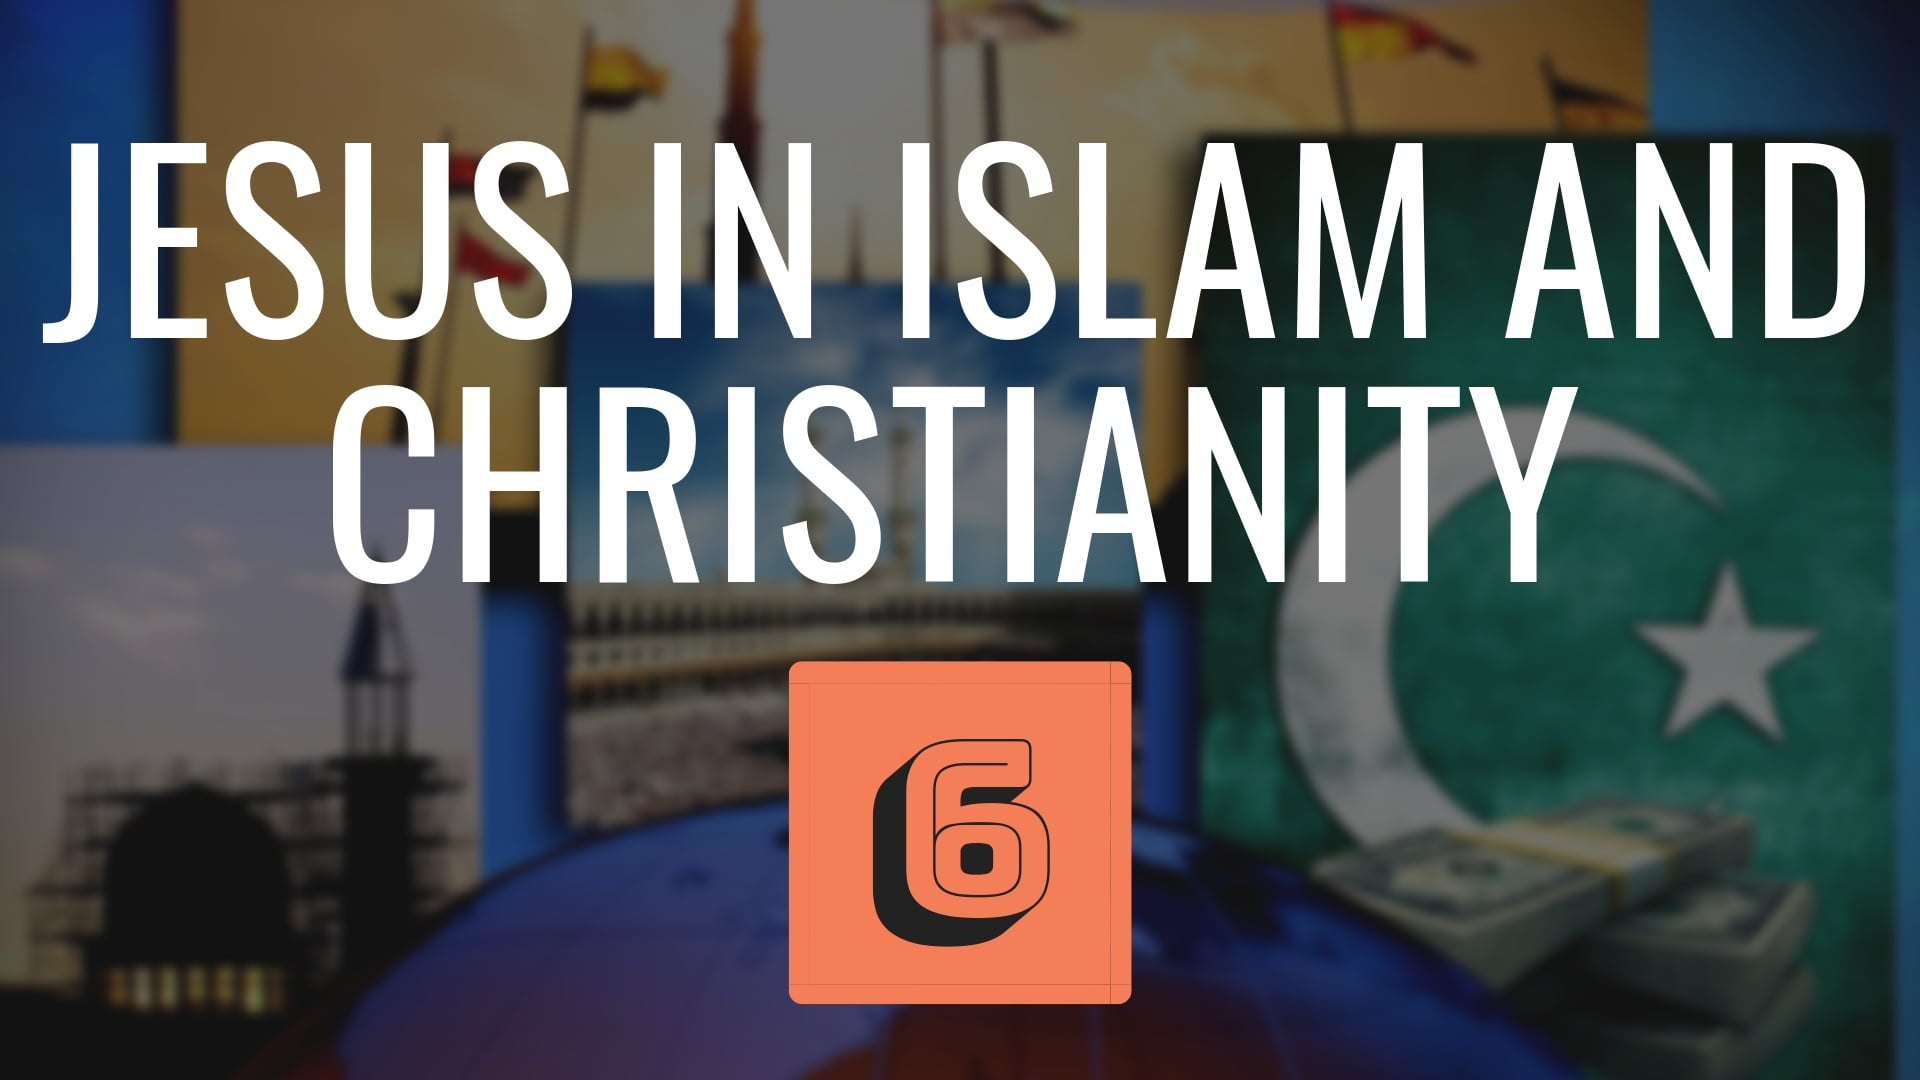 Jesus in Islam and Christianity